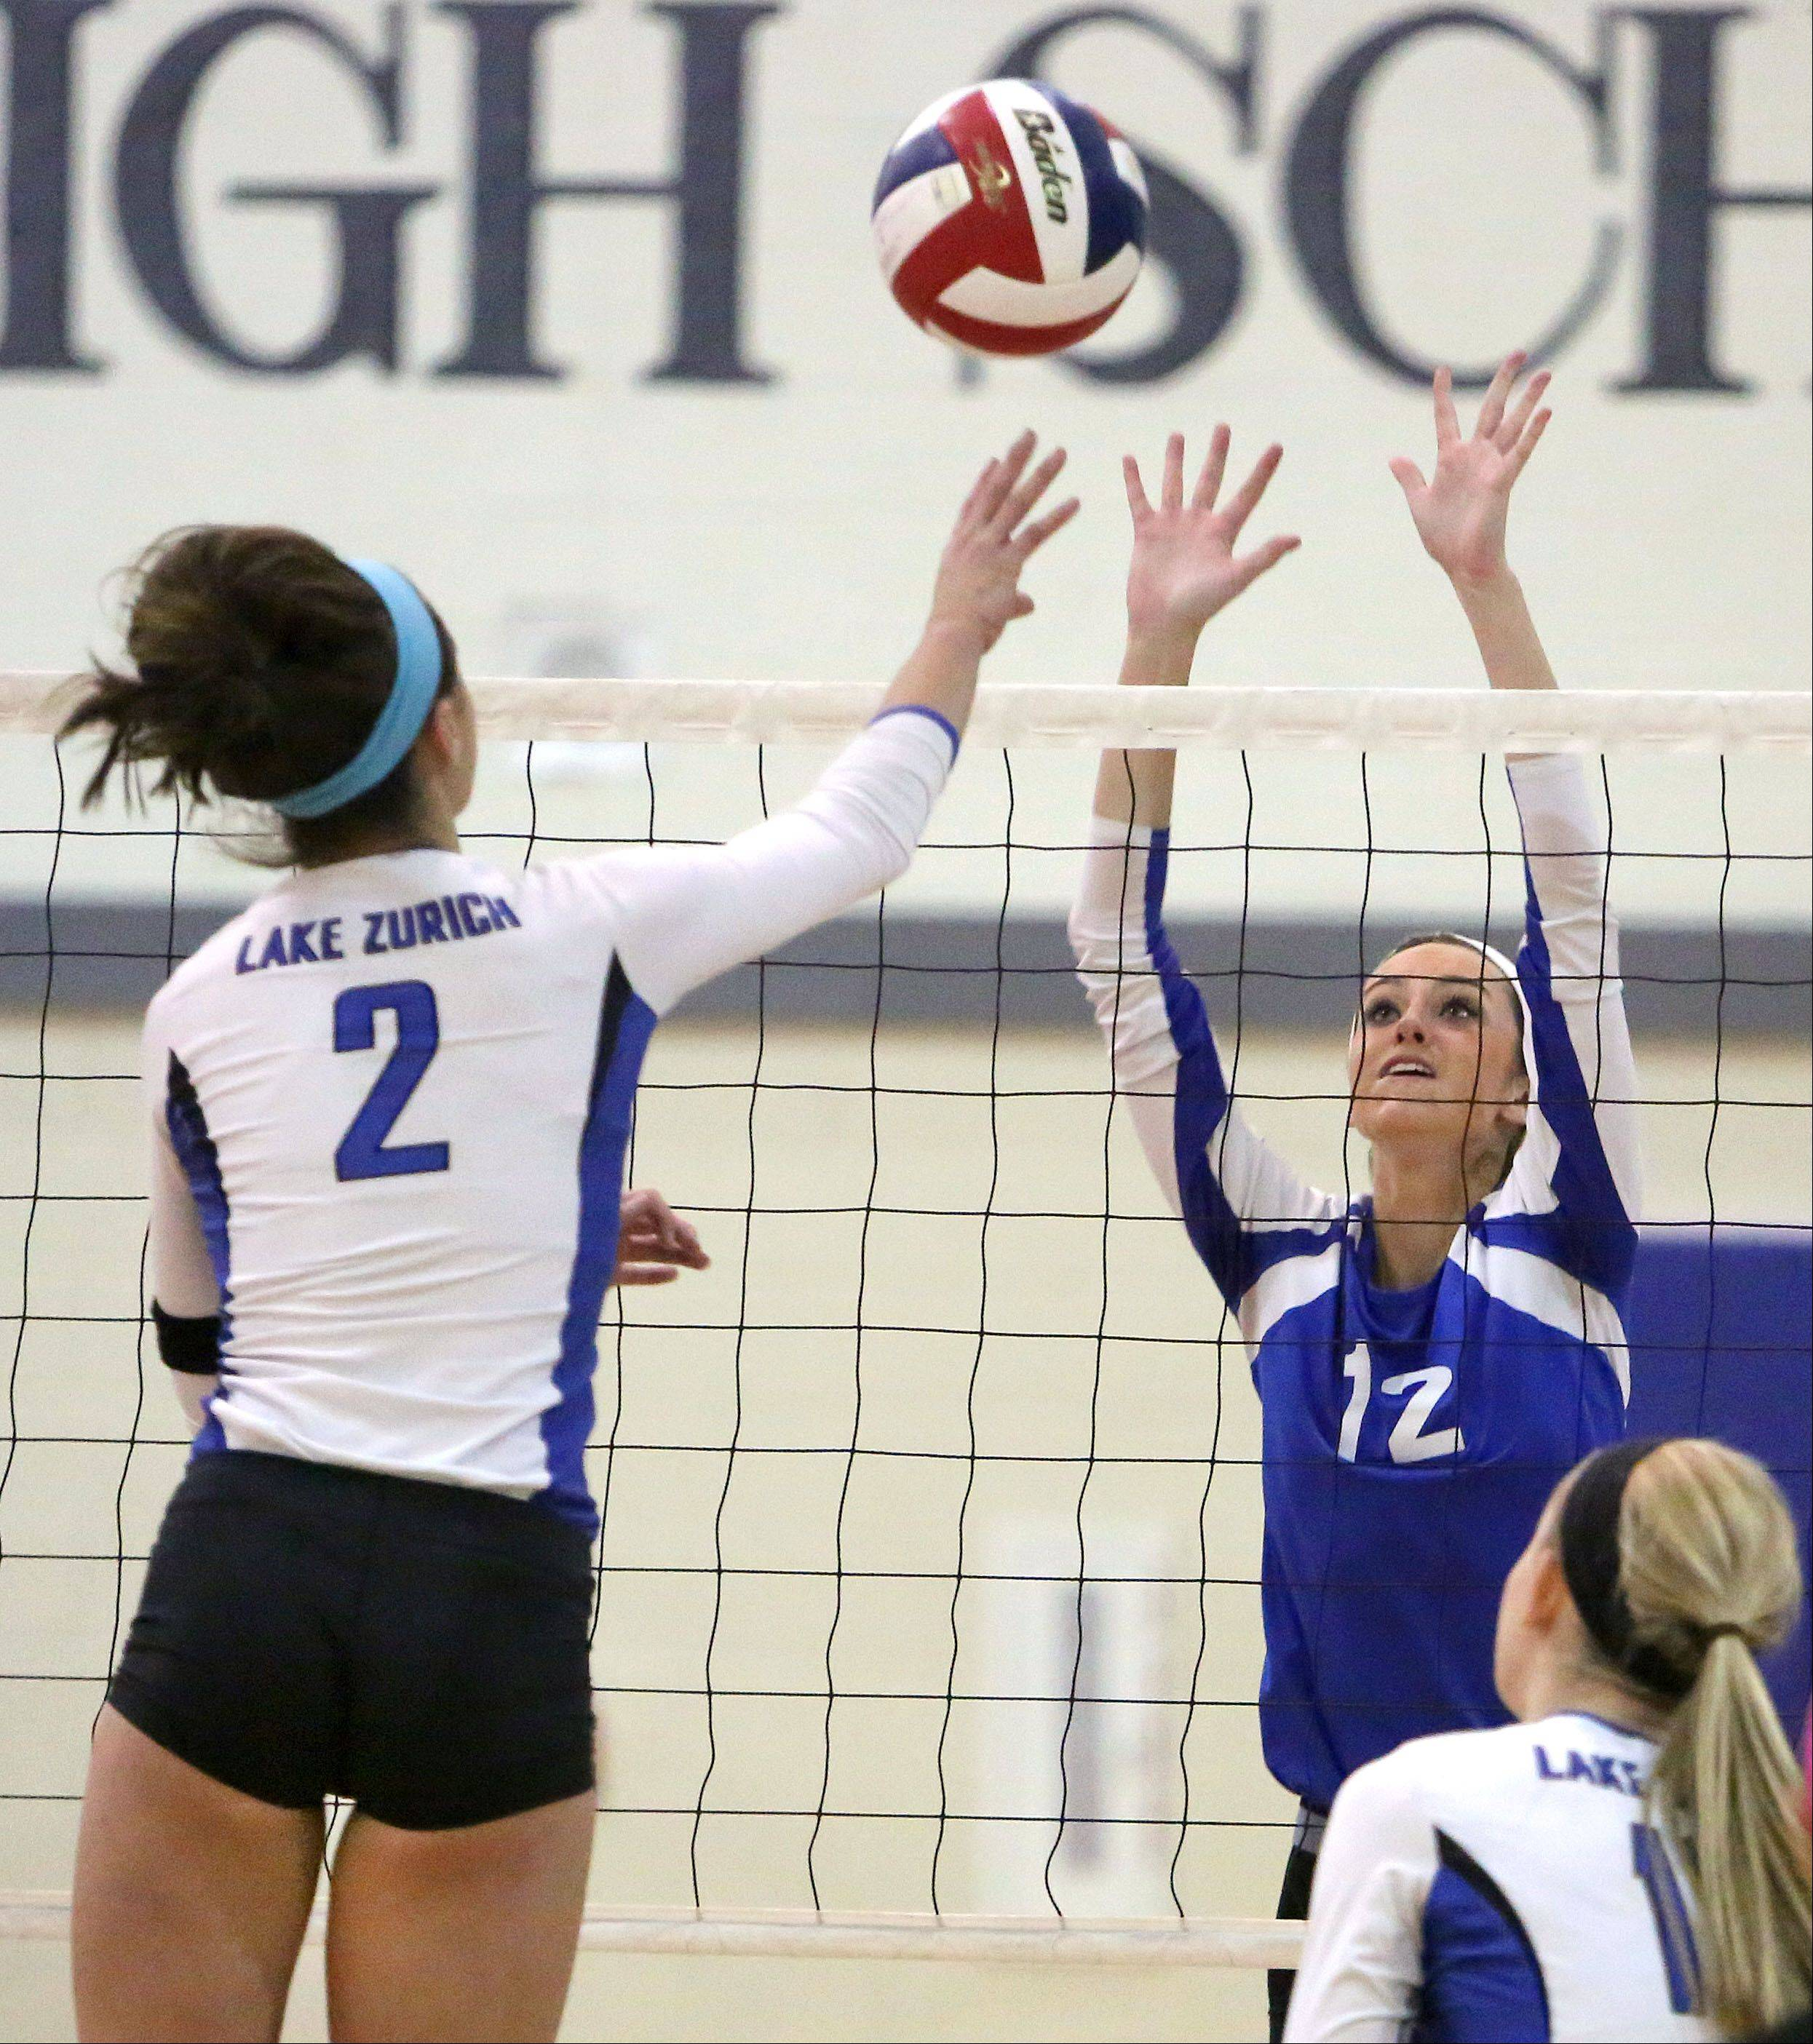 Lake Zurich's Mickenzie Andrews, left, and Lakes' Haley Halberg meet at the net during the NSC title game Wednesday night at Lakes High School.